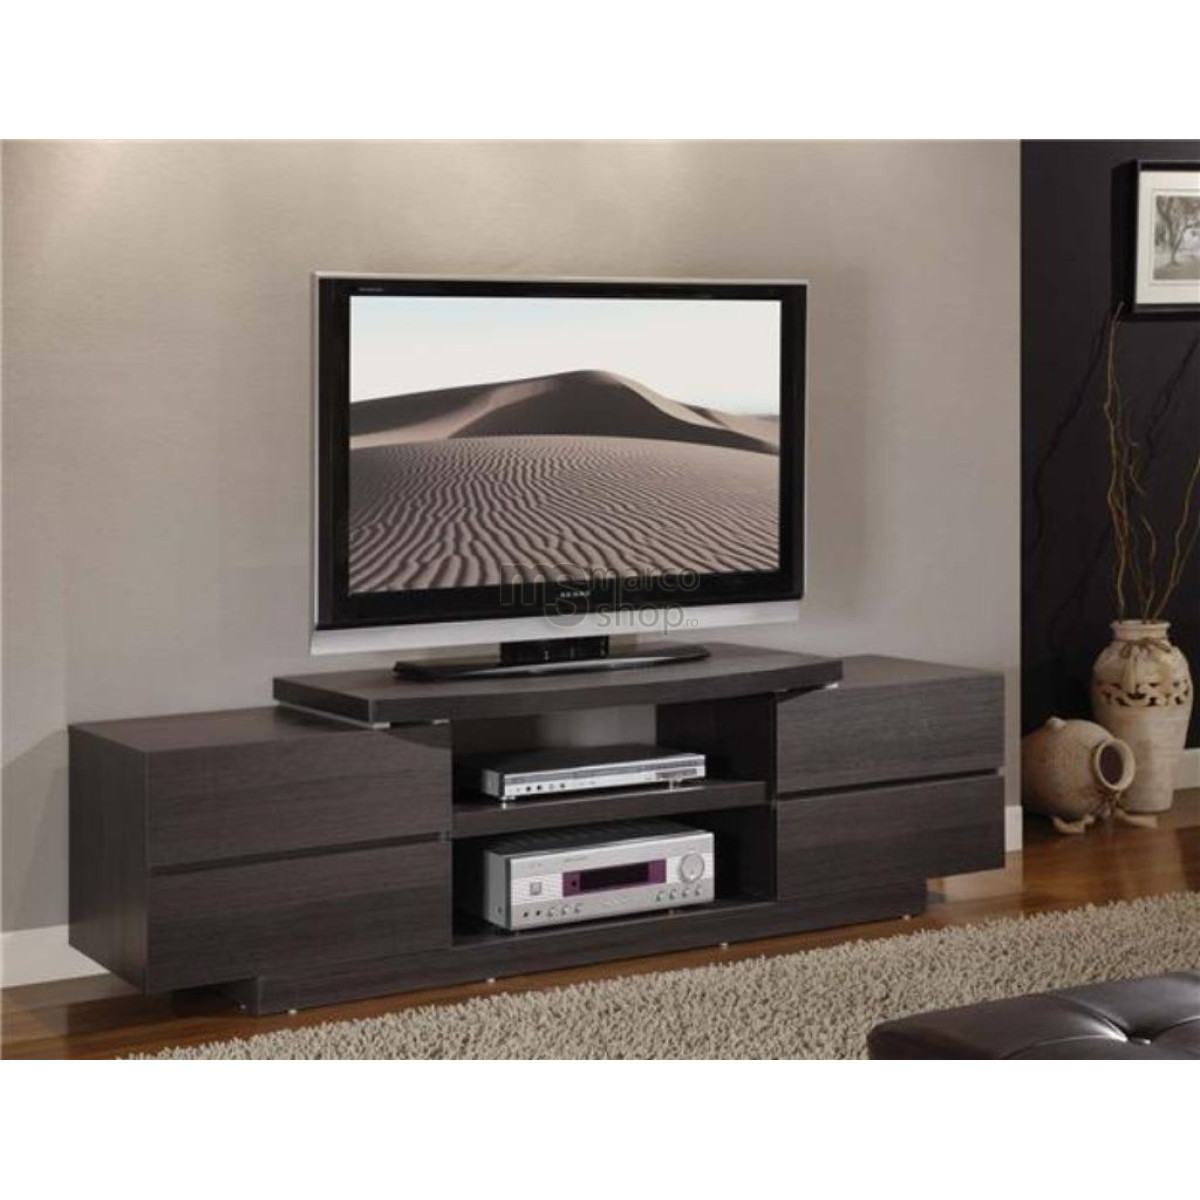 Mic mobilier masa tv marco for Mobilier tv